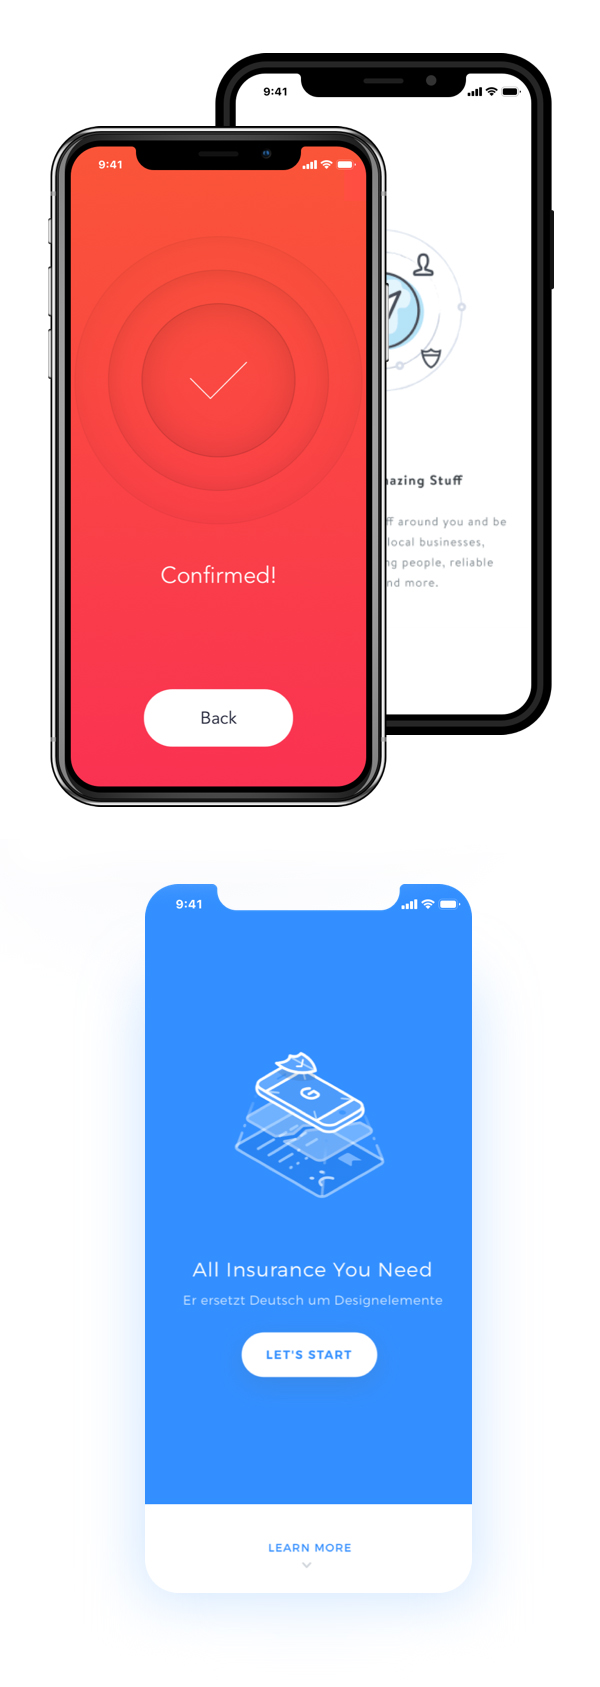 600x1687 Free Iphone X Mockup Templates